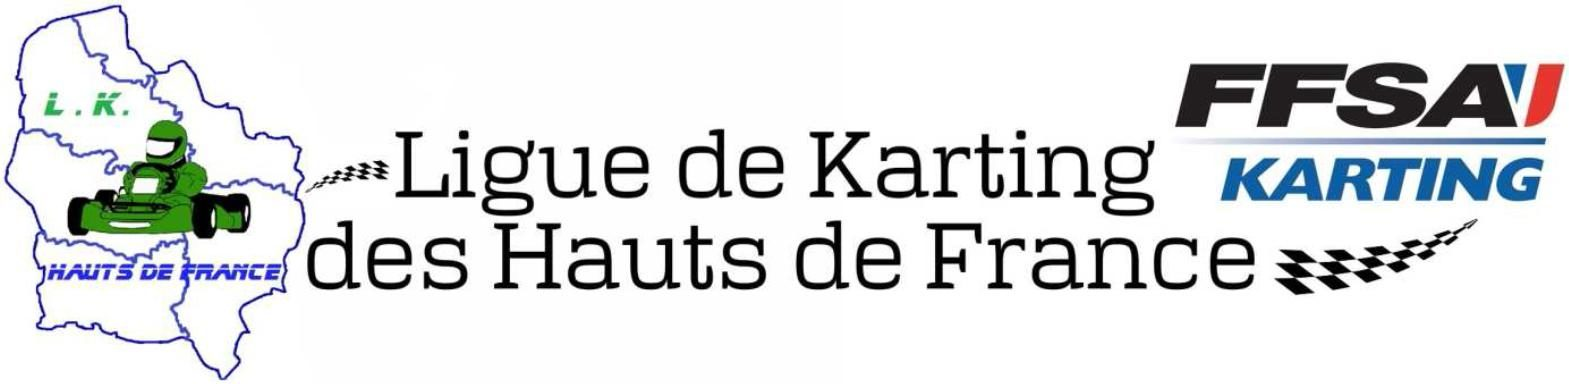 Ligue de Karting des Hauts de France